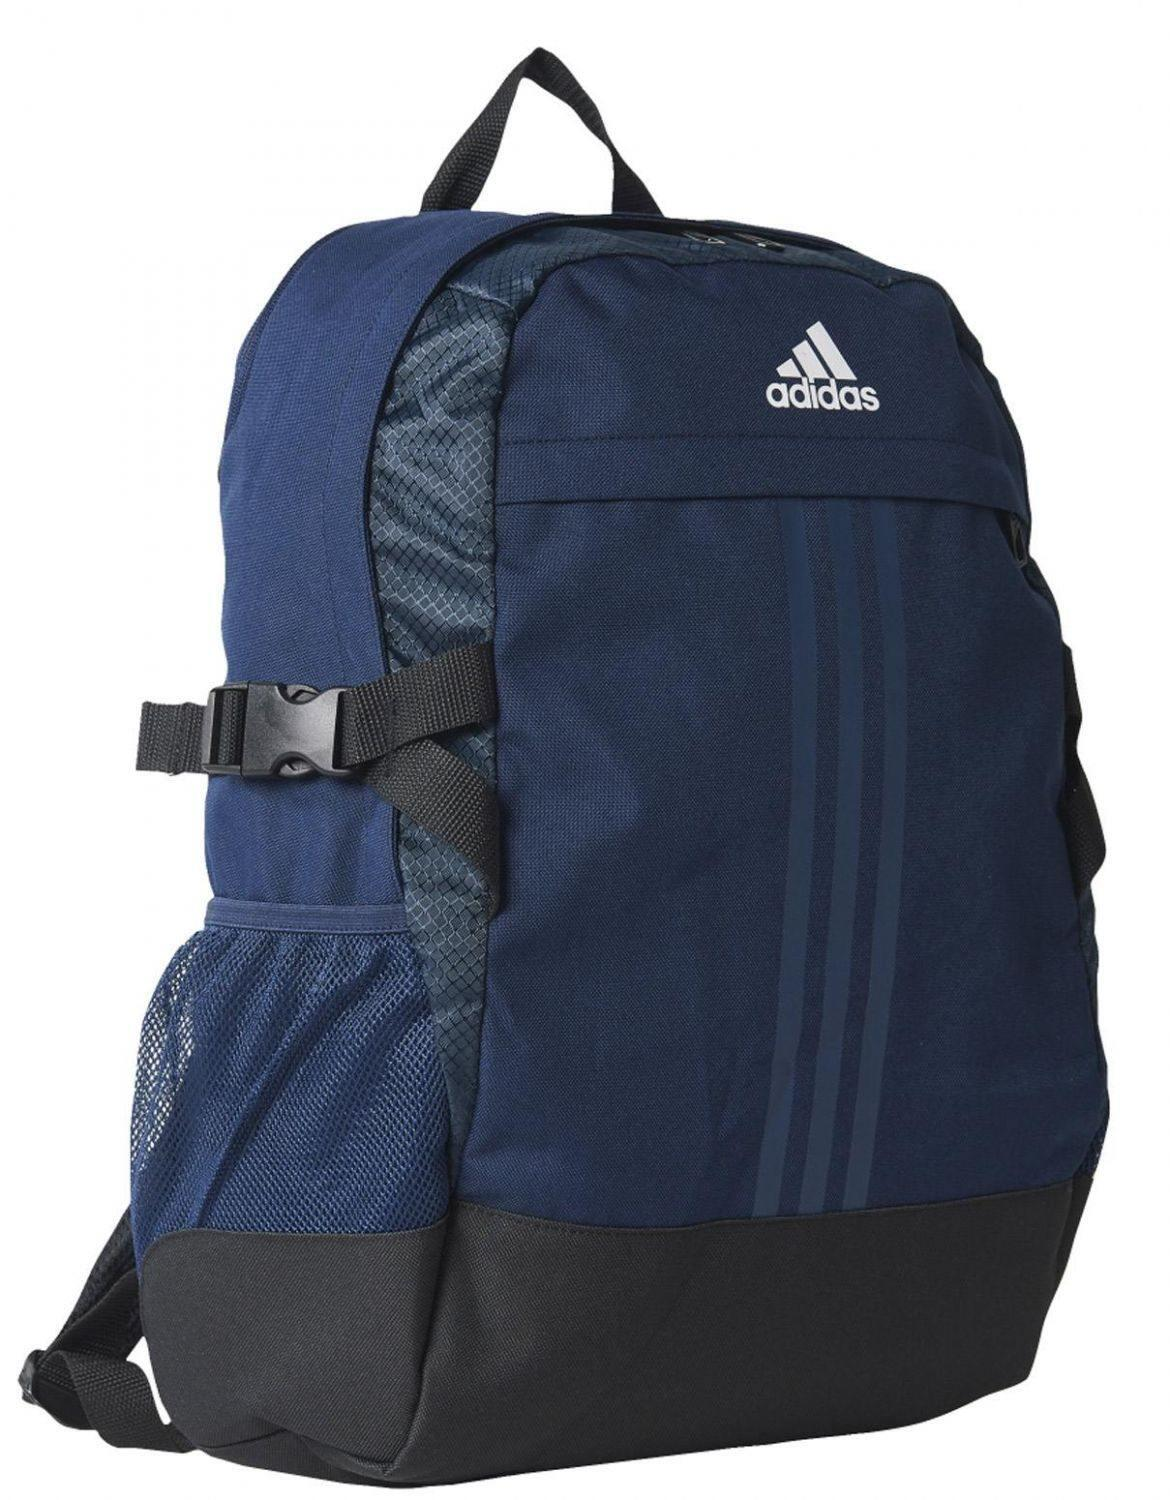 adidas-backpack-power-iii-m-laptoprucksack-farbe-collegiate-navy-collegiate-navy-white-